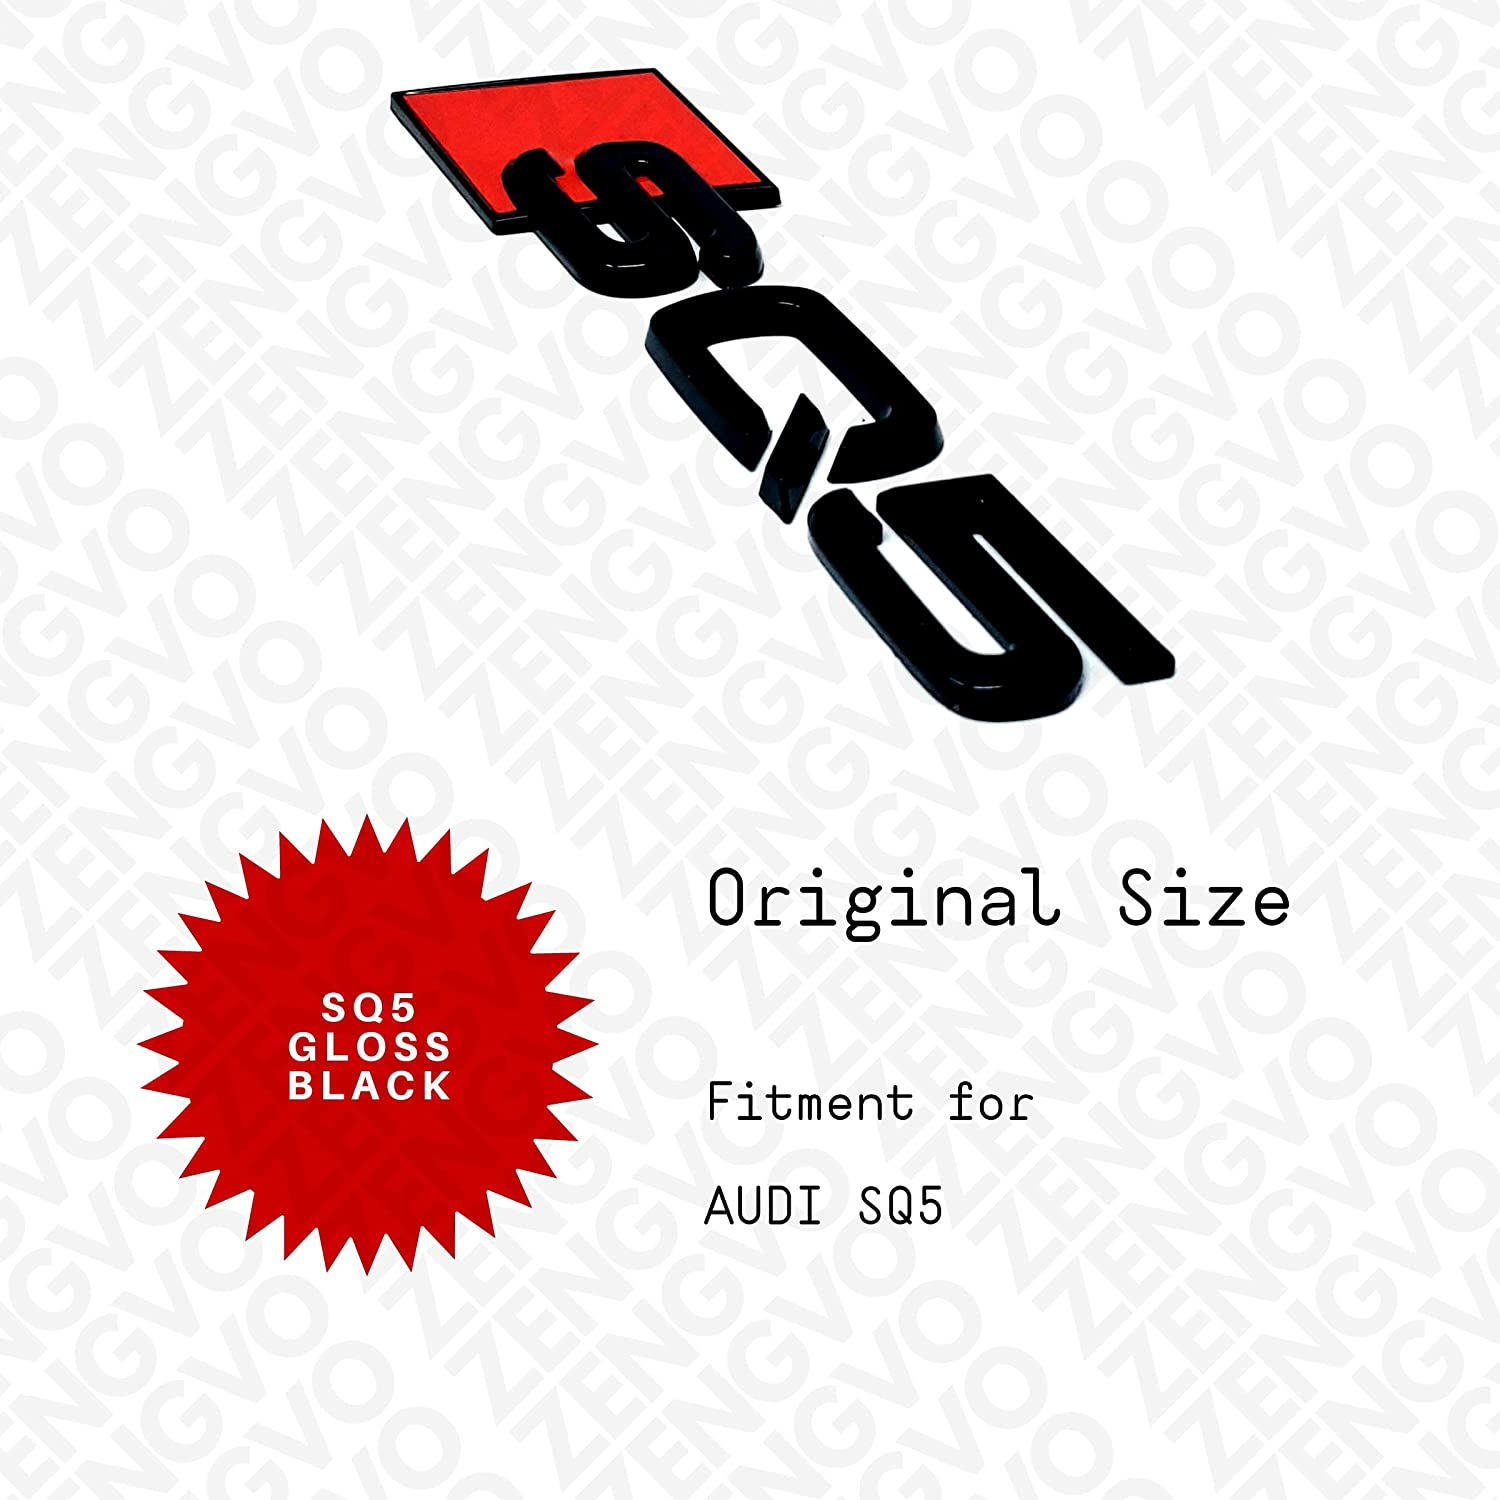 pack of 1 SQ5 GLOSS Car Emblem Badge Stickers Decals 3M Letters Logo Universal Fitment For SQ5 4 RINGS ZENGVO GLOSS BLACK a1 a2 a3 a4 a5 a6 a7 a8 a8l a4l s3 s4 s5 s6 s7 s8 rs3 rs4 rs5 rs6 rs7 r8 q2 q3 q4 q5 q6 q7 q8 sq3 sq5 sq7 ttrs etron 4 rings S lin